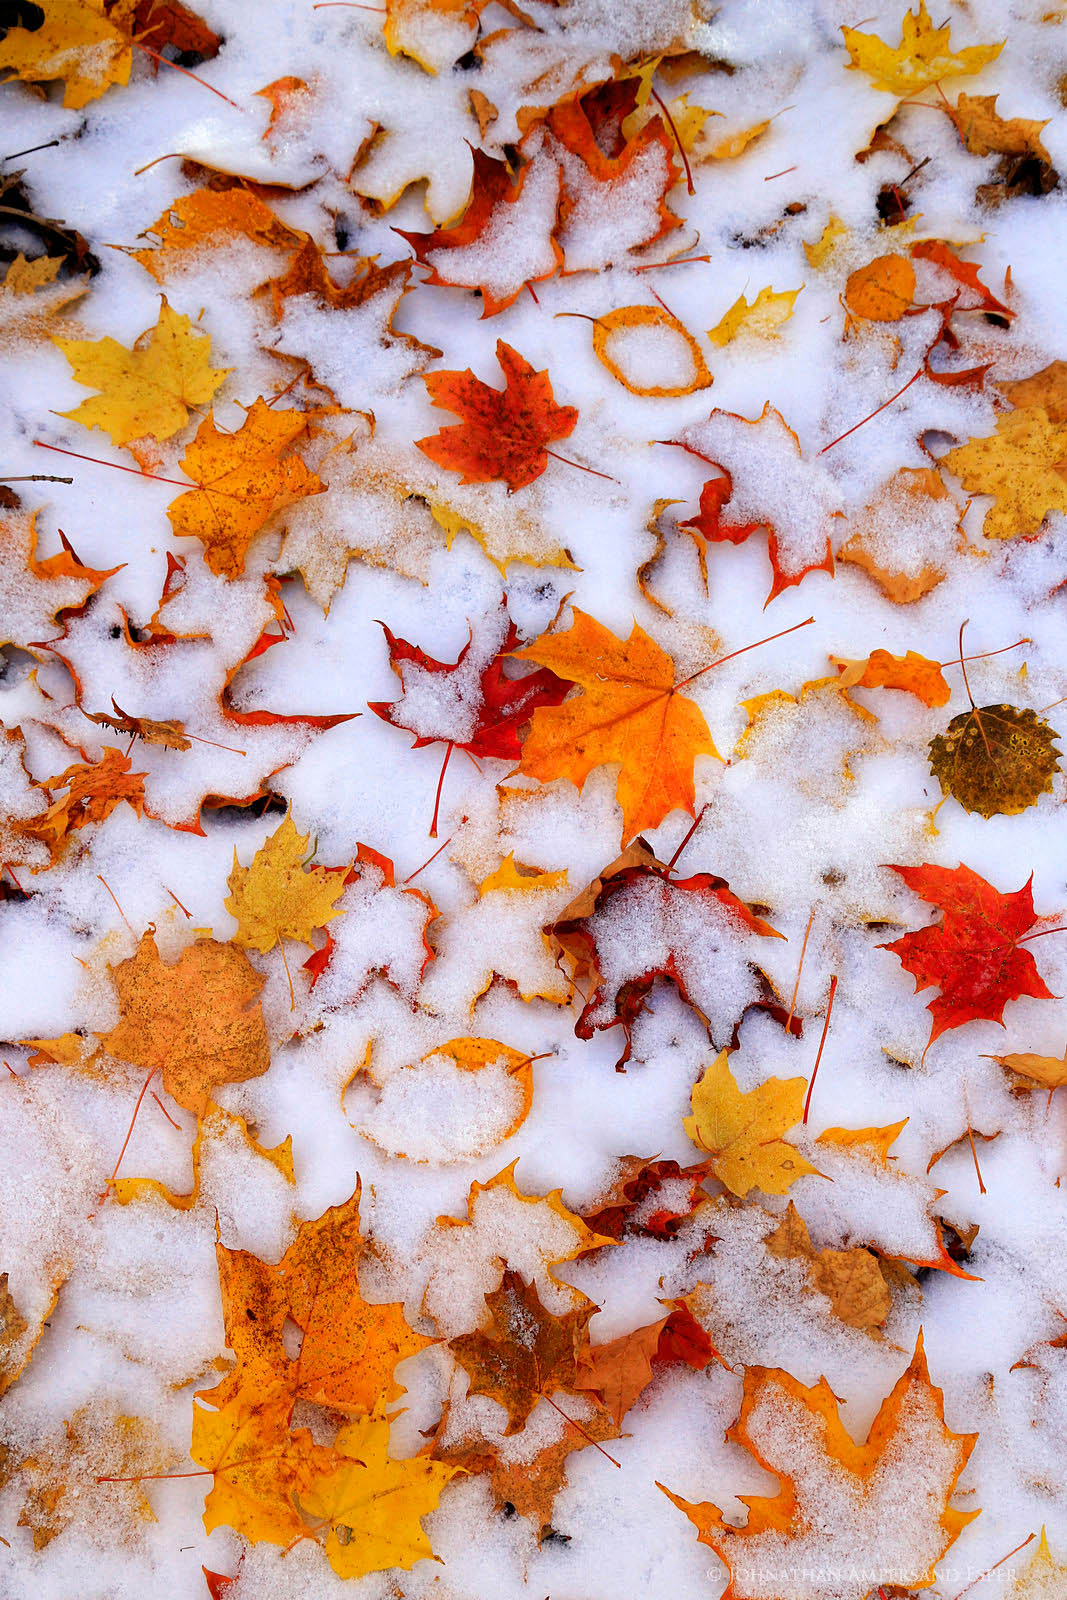 Snow Mt,snow,dusting,snow dusting,maple leaves,maple,autumn snow,autumn snowfall,detail,orange,maple,October,Keene Valley, photo